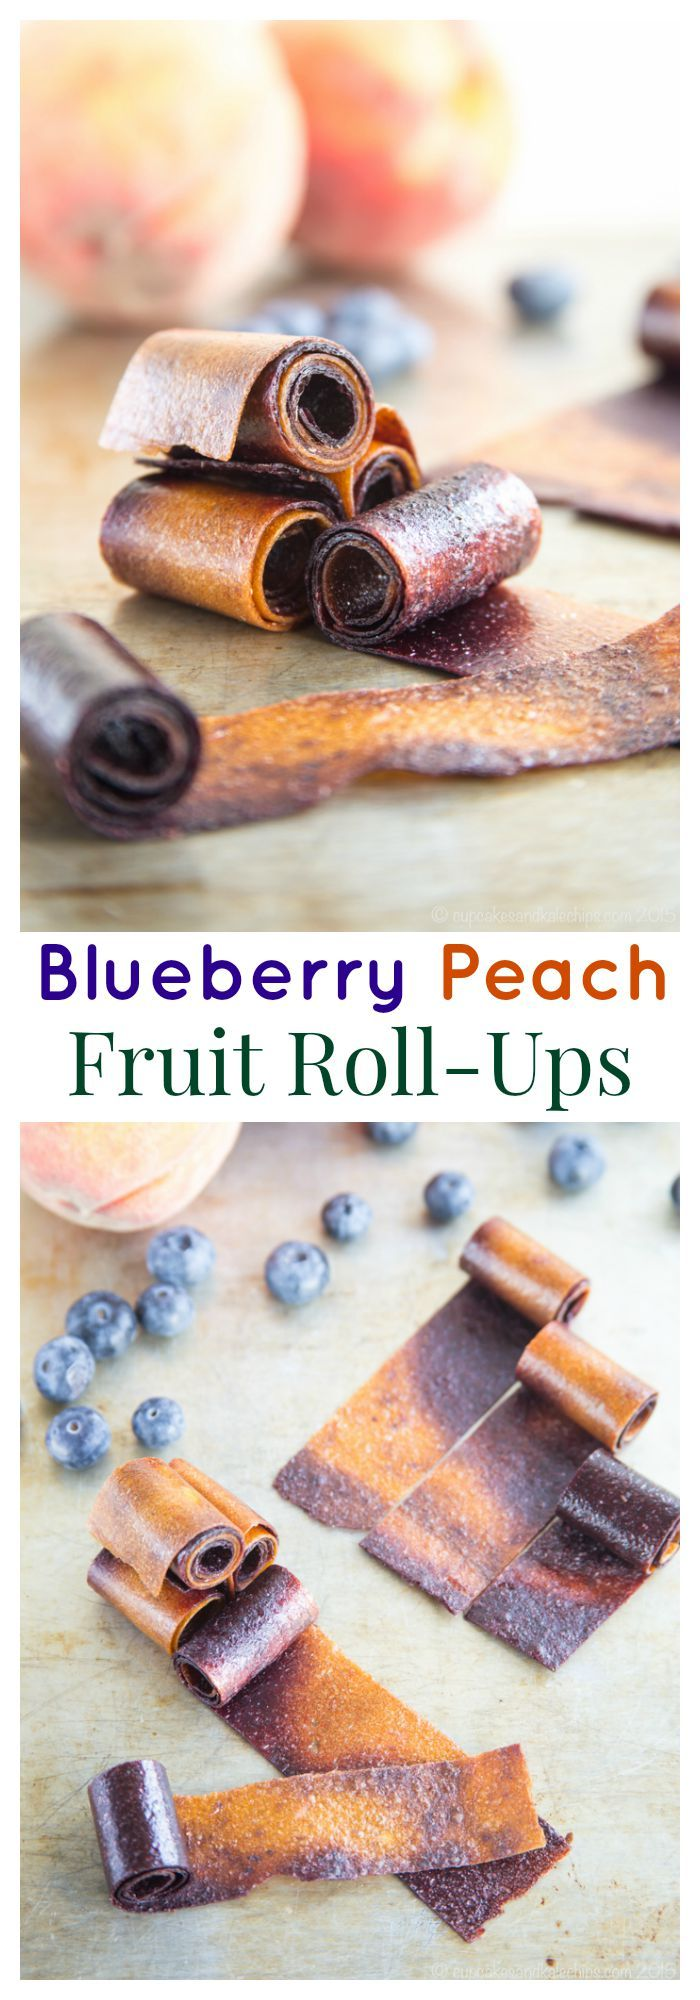 Blueberry Peach Fruit Roll-Ups swirl together two favorite summer fruits into one sweet and healthy snack perfect to pack in a lunchbox. #SundaySupper | cupcakesandkalechips.com | gluten free, vegan, paleo recipe